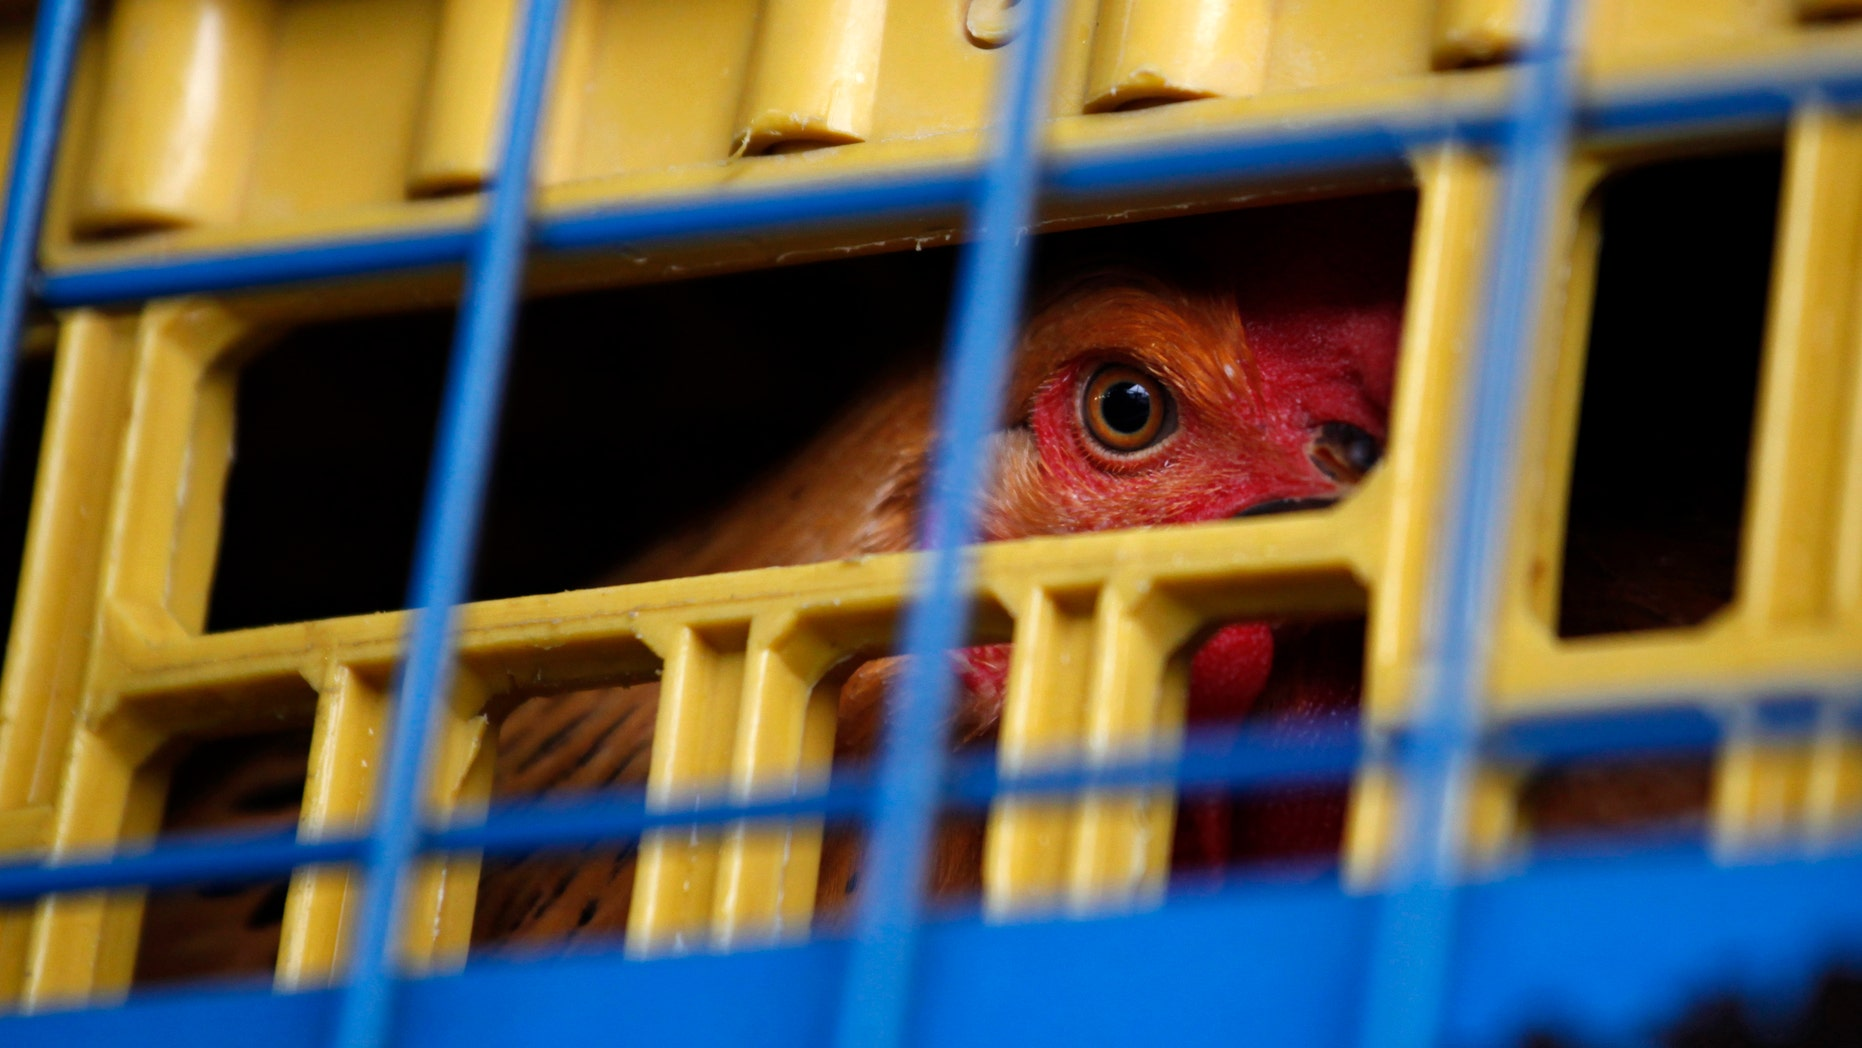 A chicken is seen inside a cage on a truck from mainland China at a border checkpoint in Hong Kong.